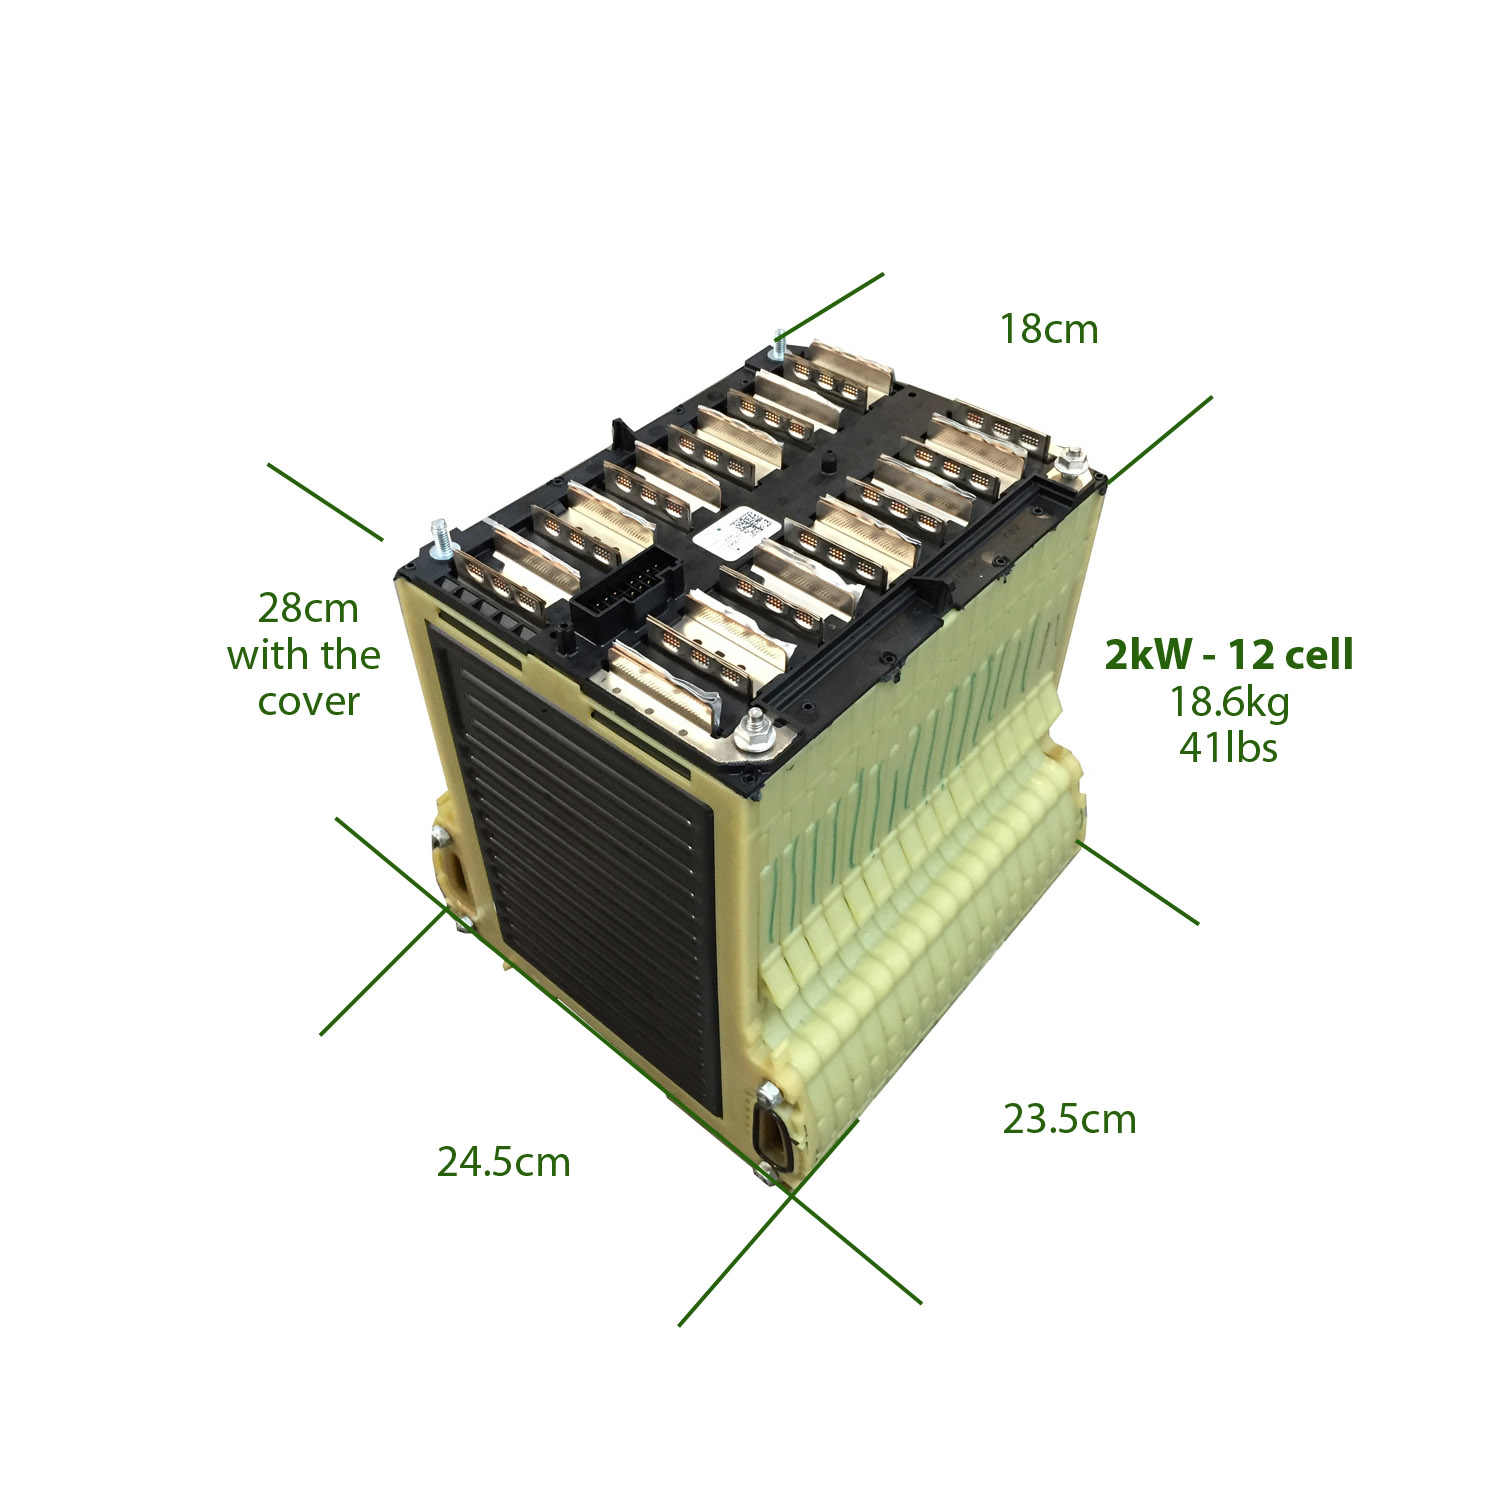 2kwh Lithium Battery Pack Chevrolet Volt 47v 47ah 12 Cells Batterycelldiagramjpg 43000 Each